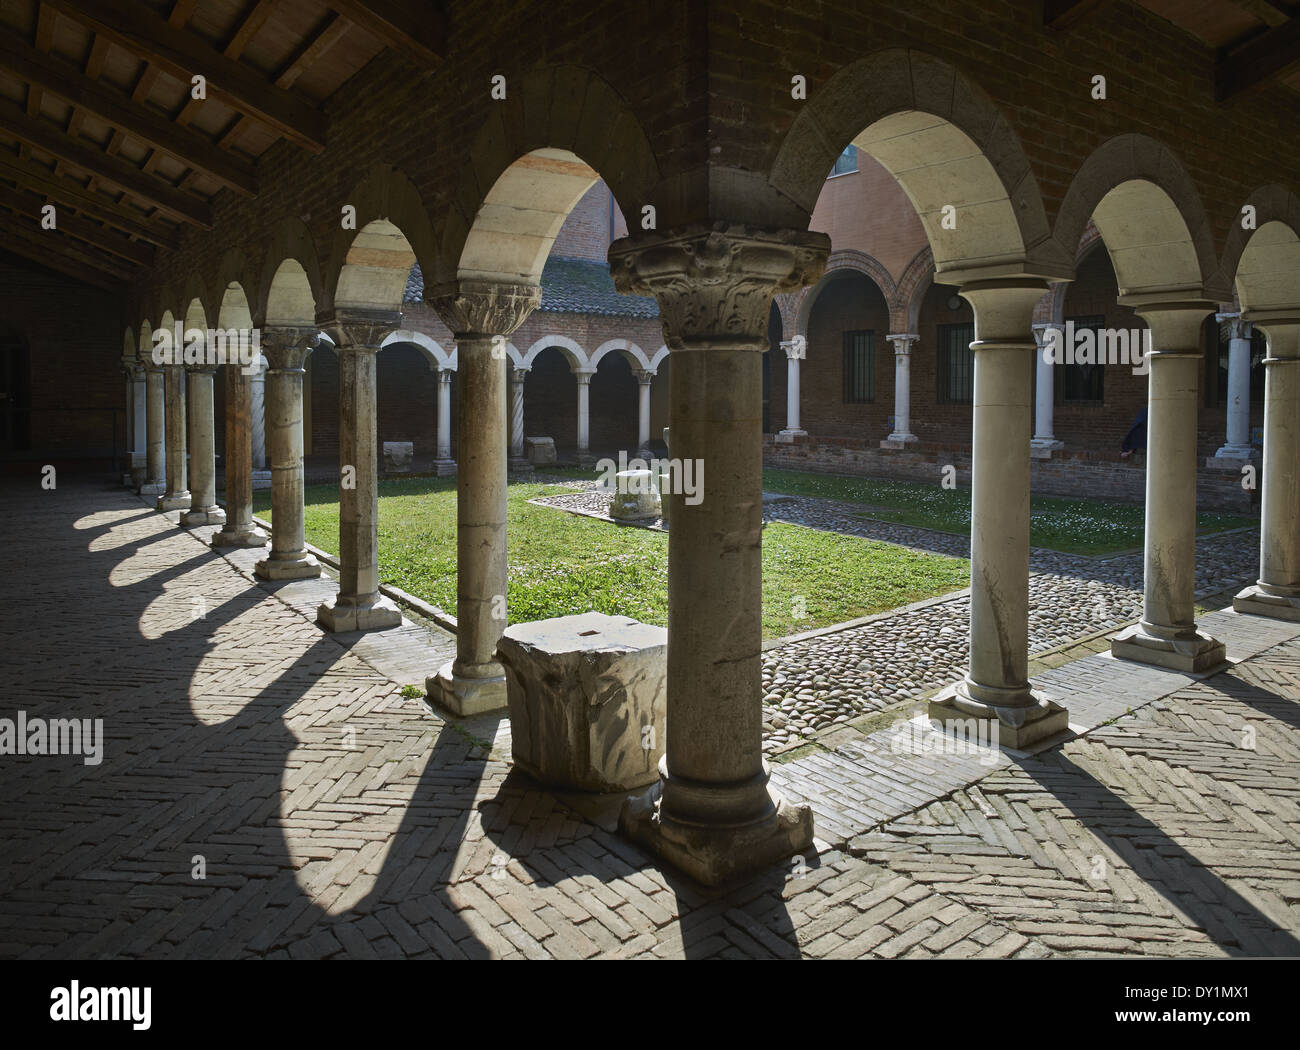 Cloister in the former church of San Romano, now home to the Museo della Cattedrale. 12th-13th century Italian Romanesque - Stock Image